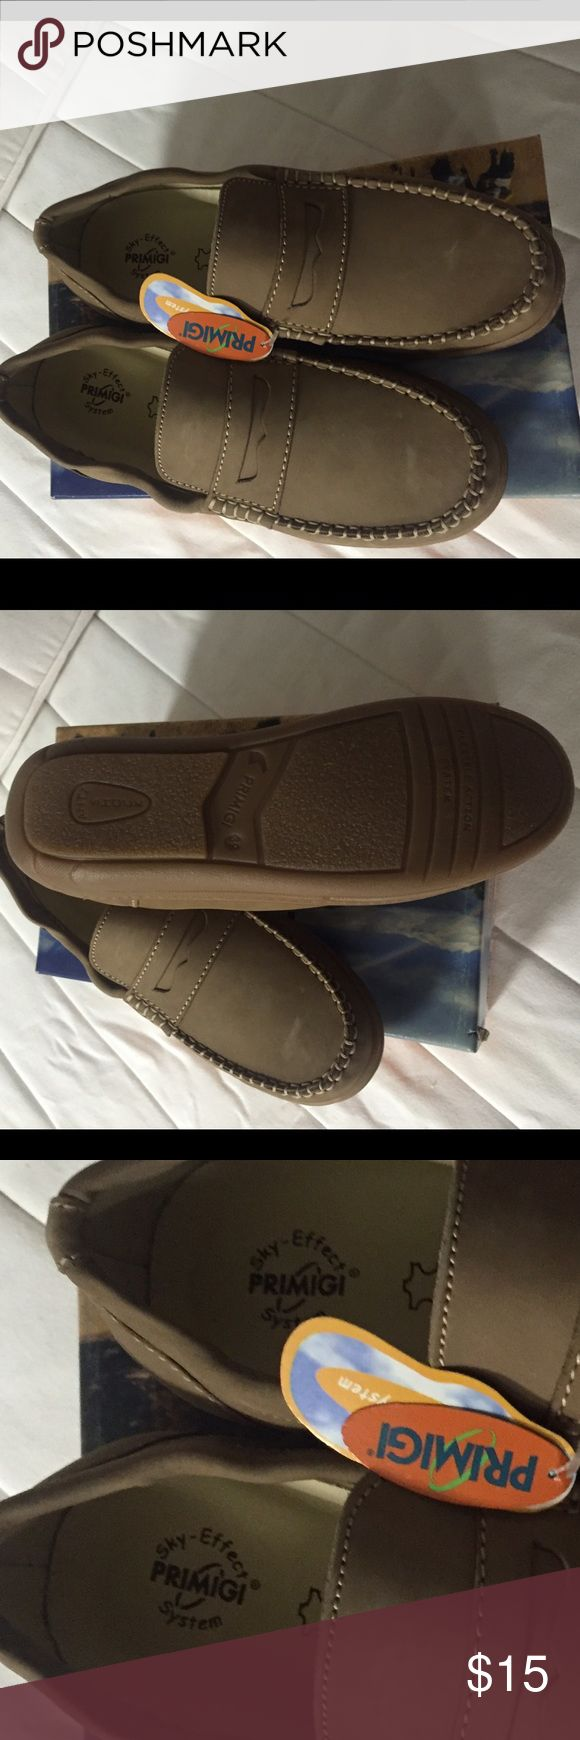 Primigi  shoes Very comfortable tan  shoes. New in a box Primigi Shoes Moccasins